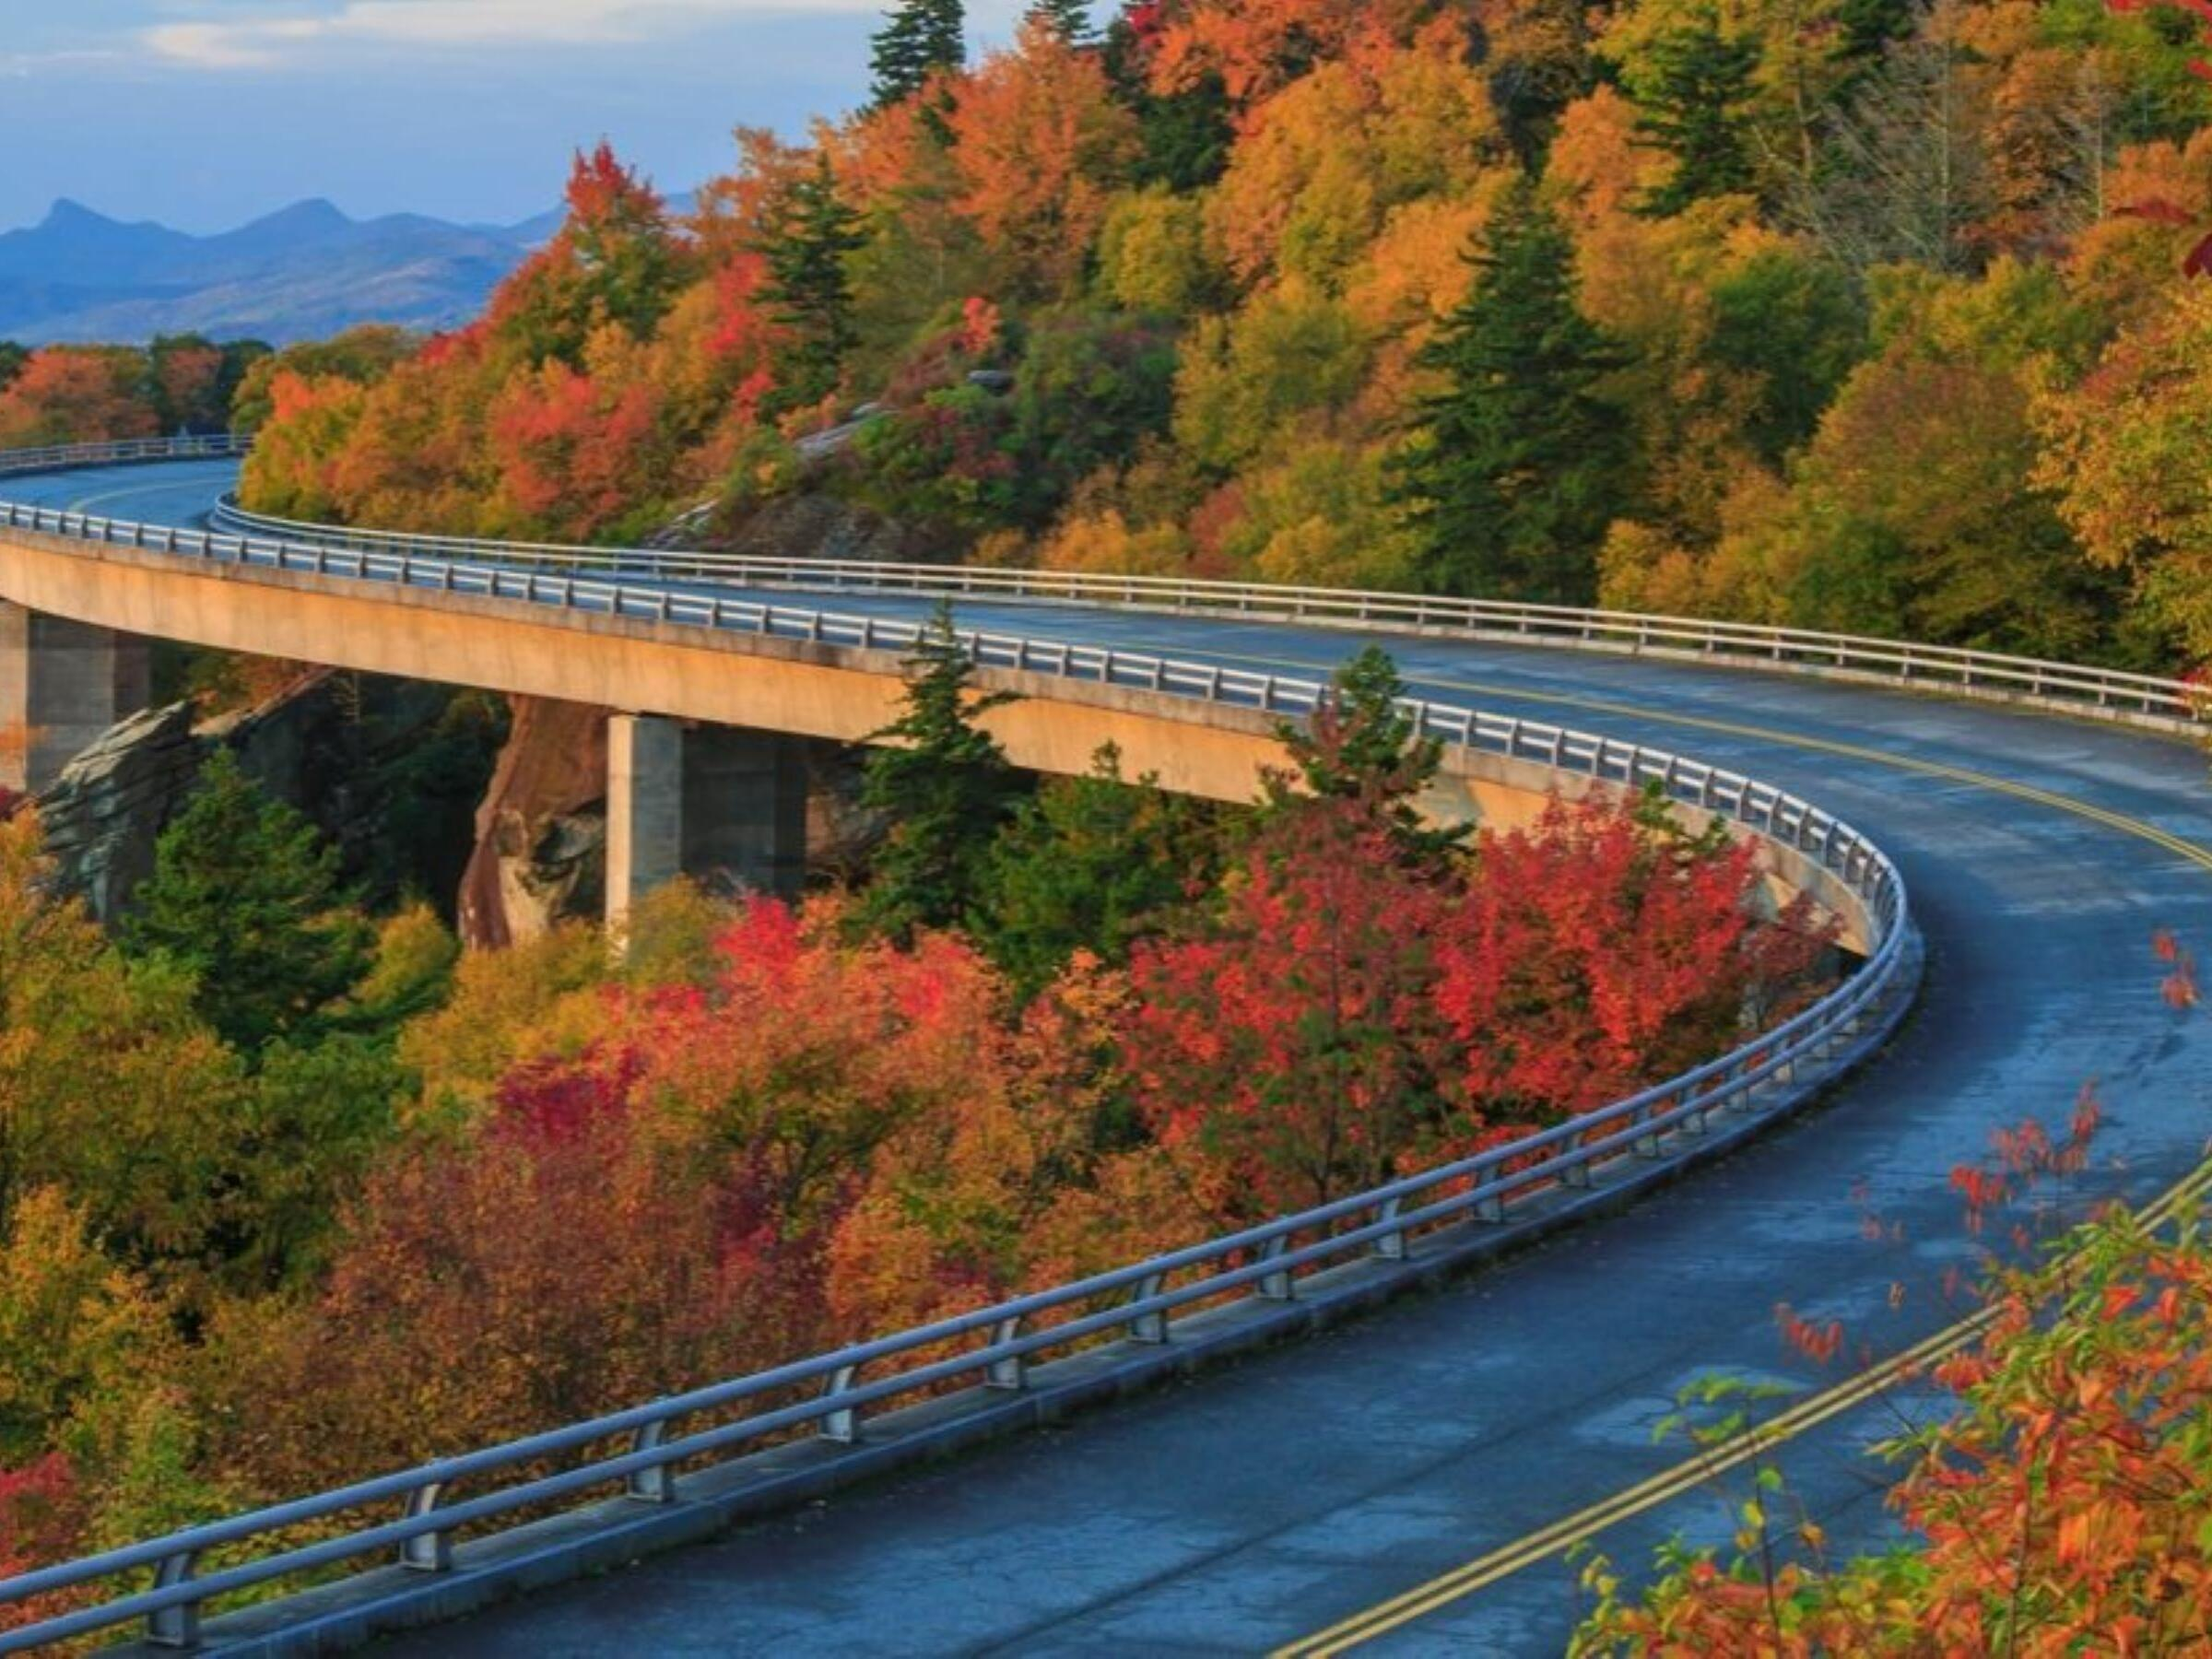 Blue Ridge Parkway by the forest near Mountain Inn & Suites